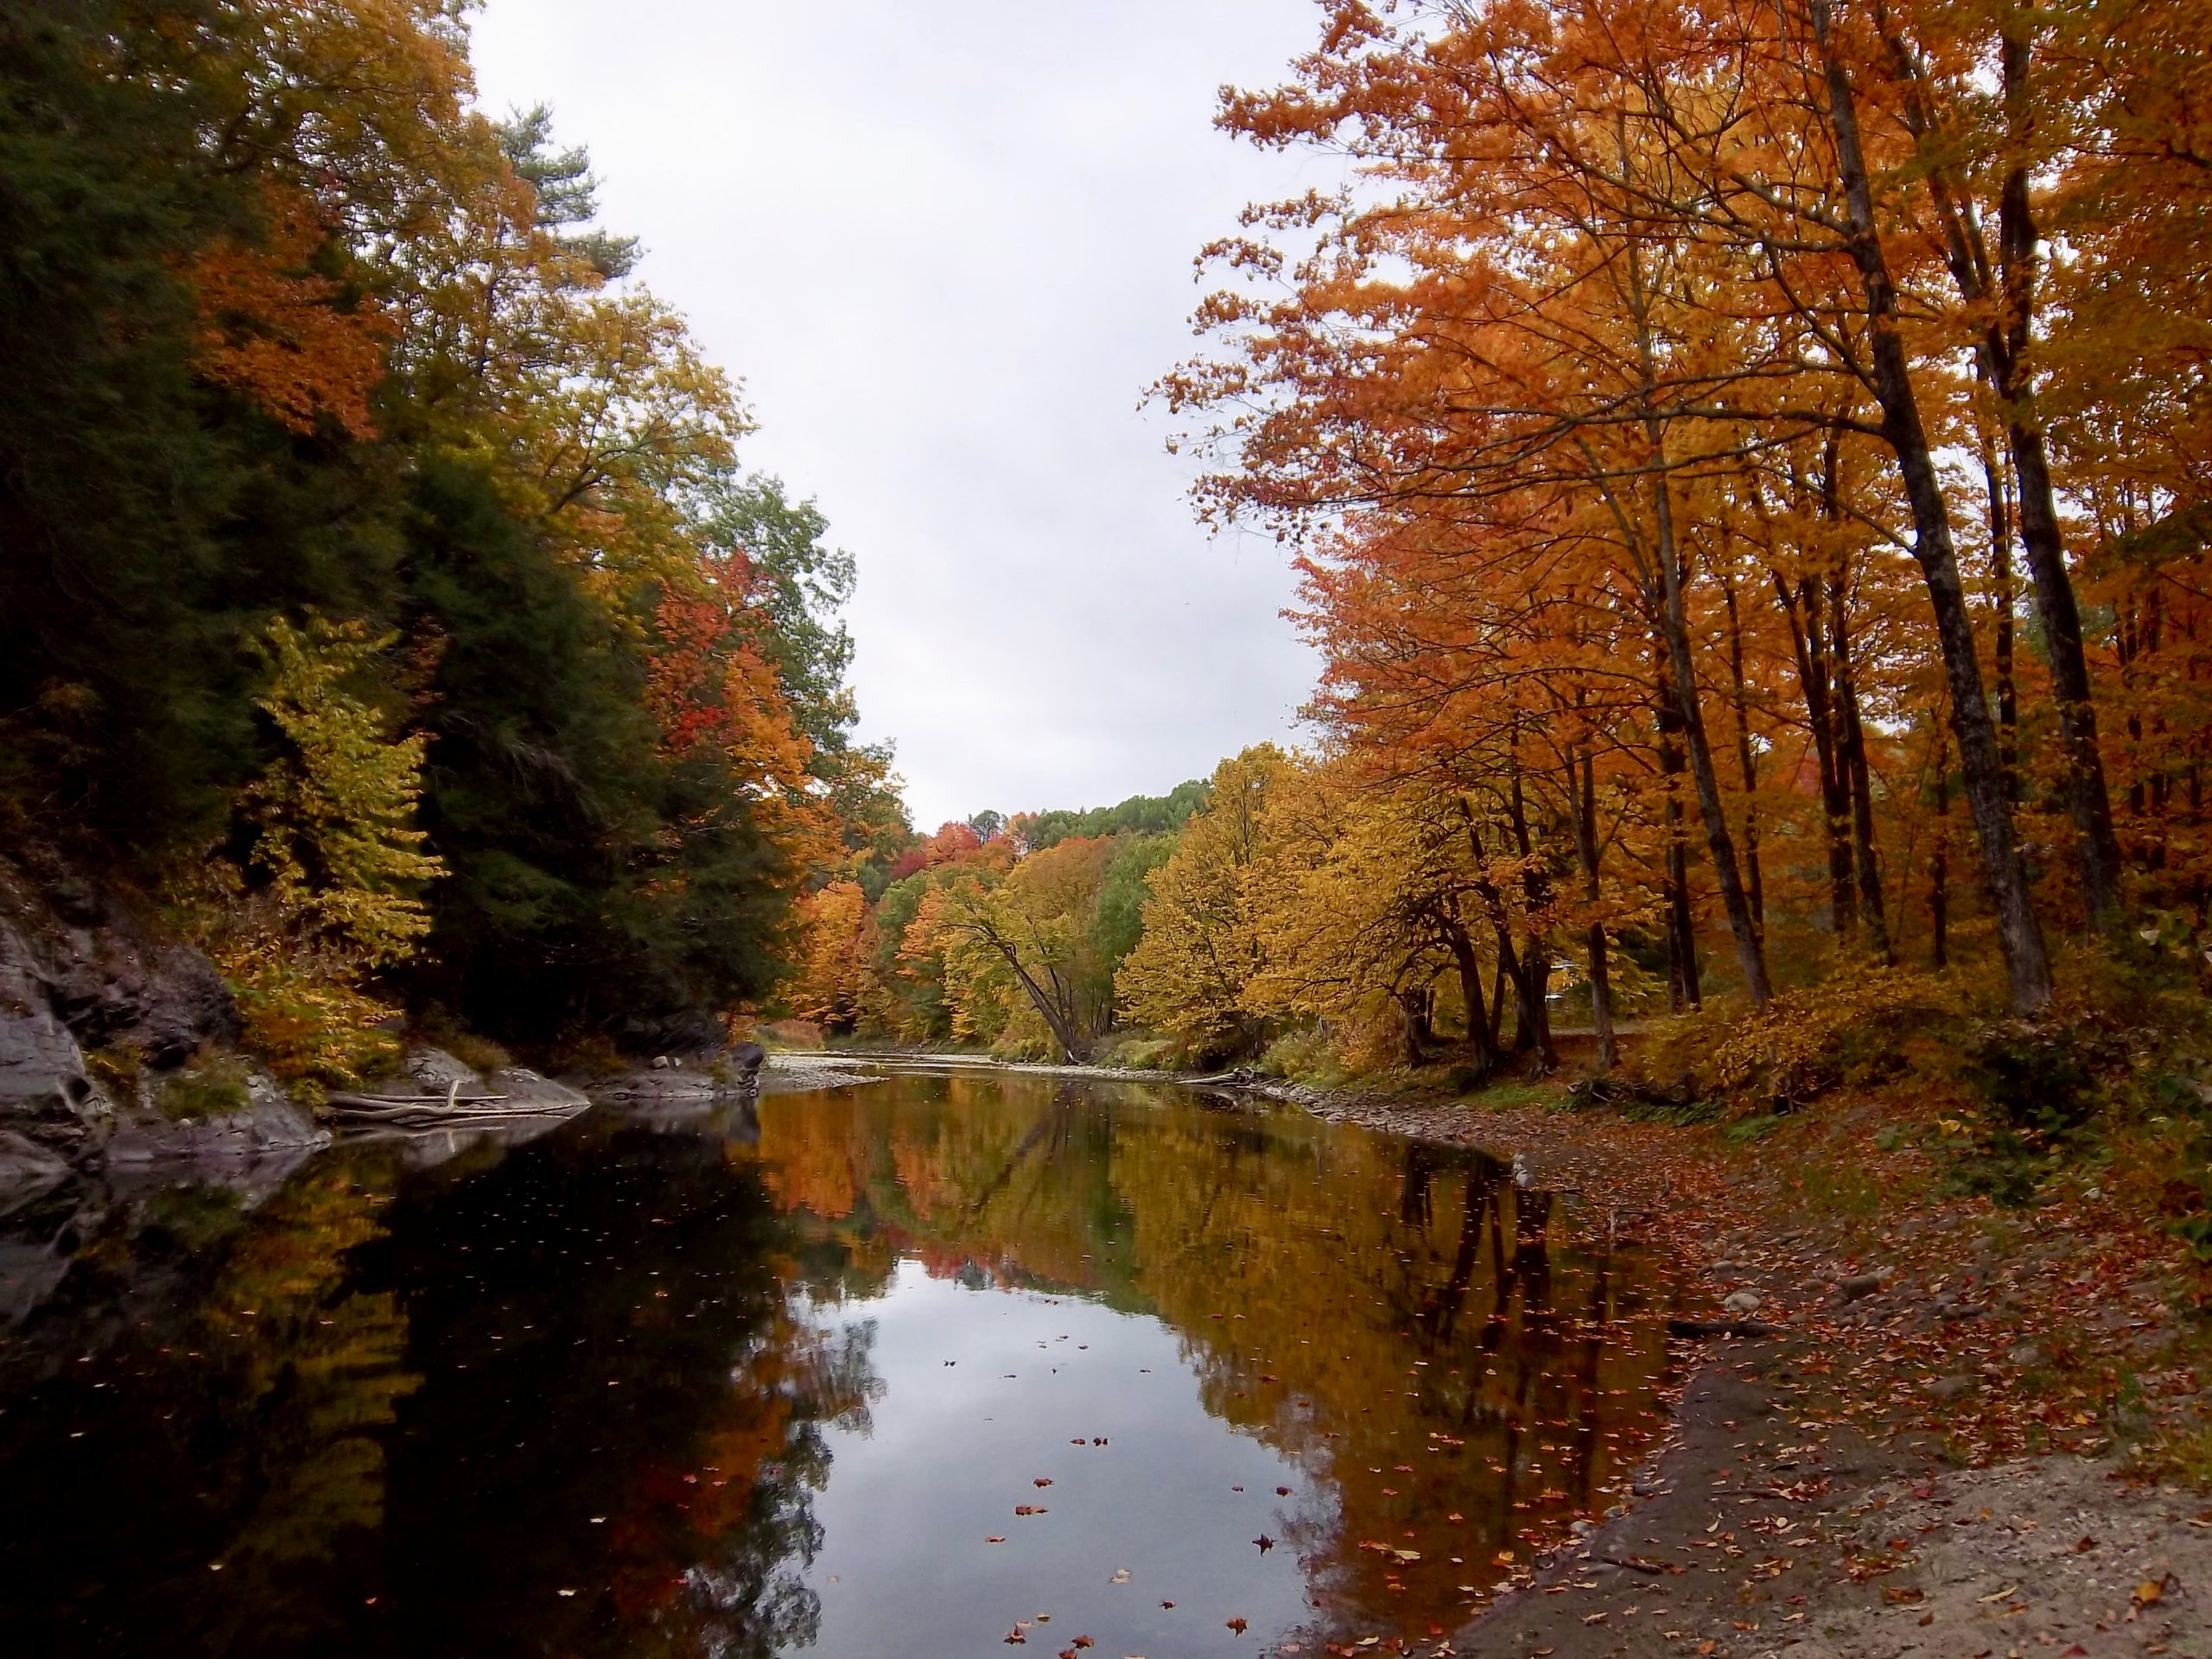 Contest Entry #24 - The Waits River - Still water with sandy shoreline reflecting riverbanks of peak foliage trees receding to a background of grey clouds